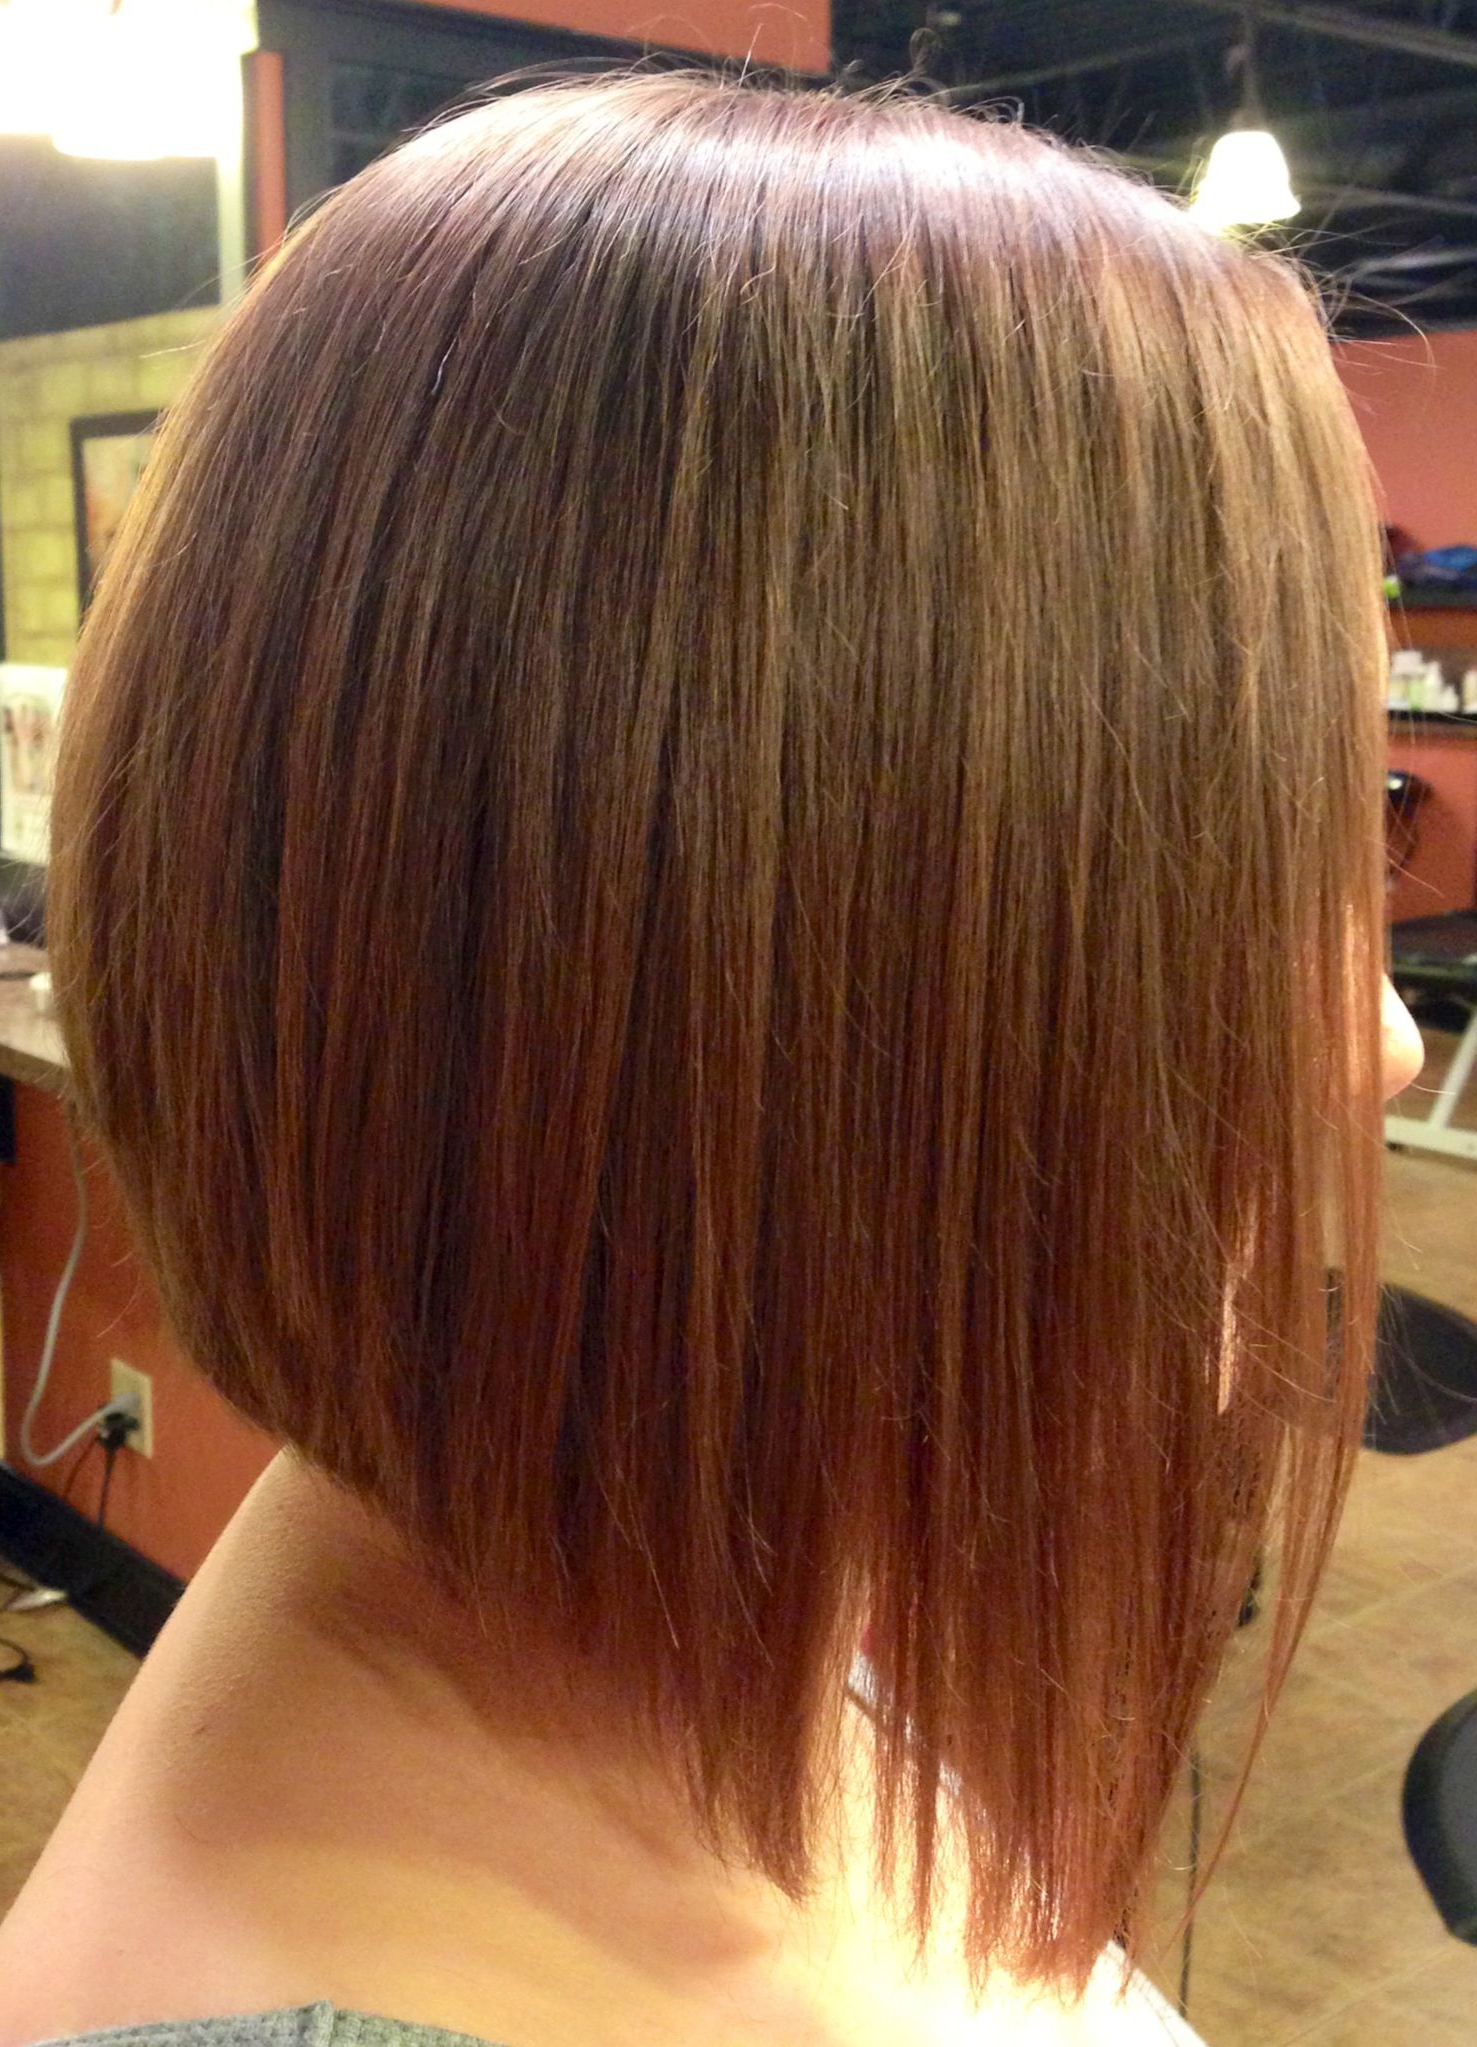 Latest Stacked Swing Bob Hairstyles Intended For Long Inverted Bob With A Dramatic Angle (View 5 of 20)